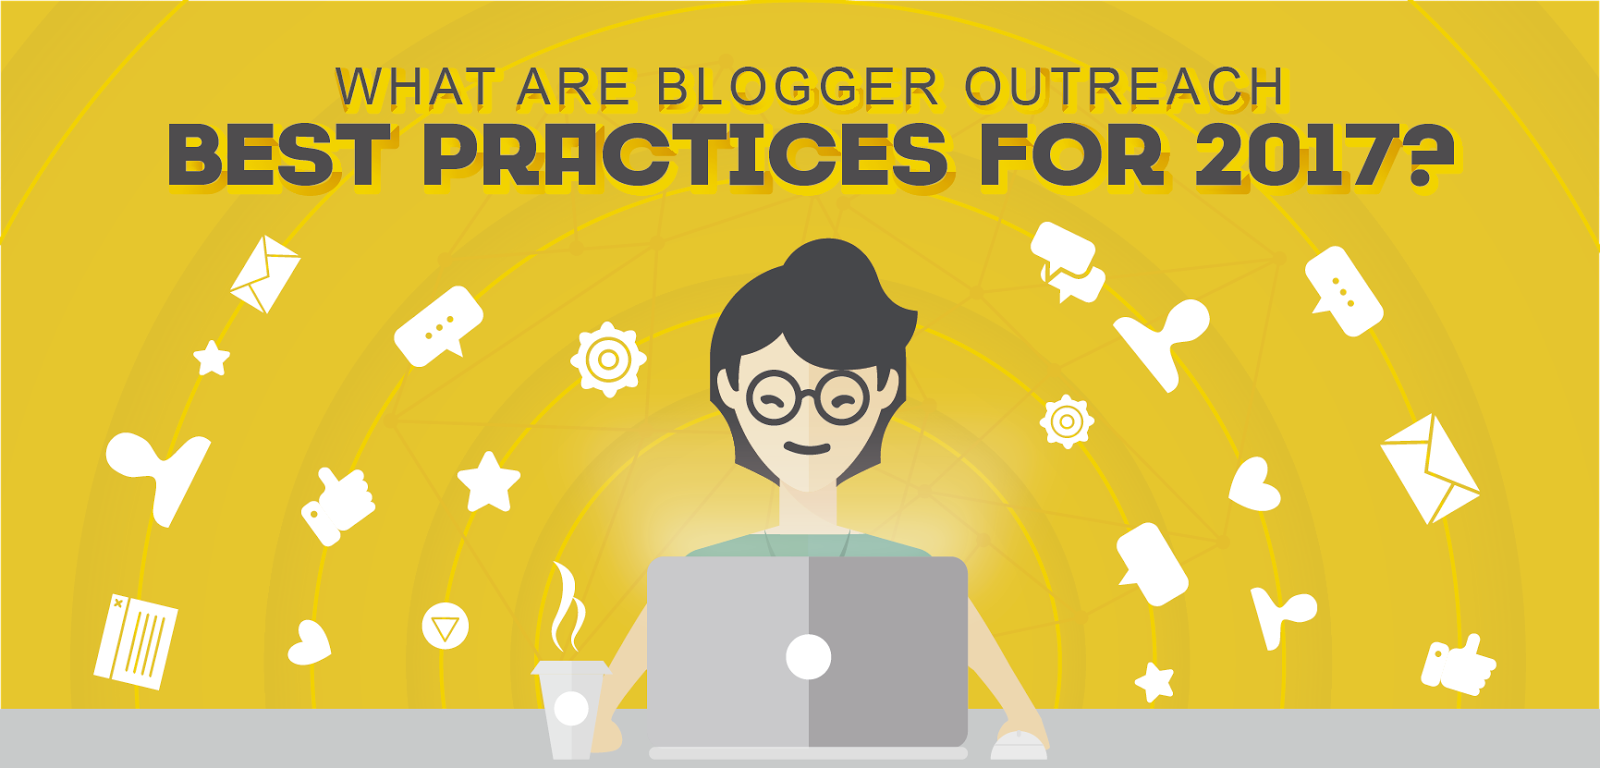 blogger outreach best practices